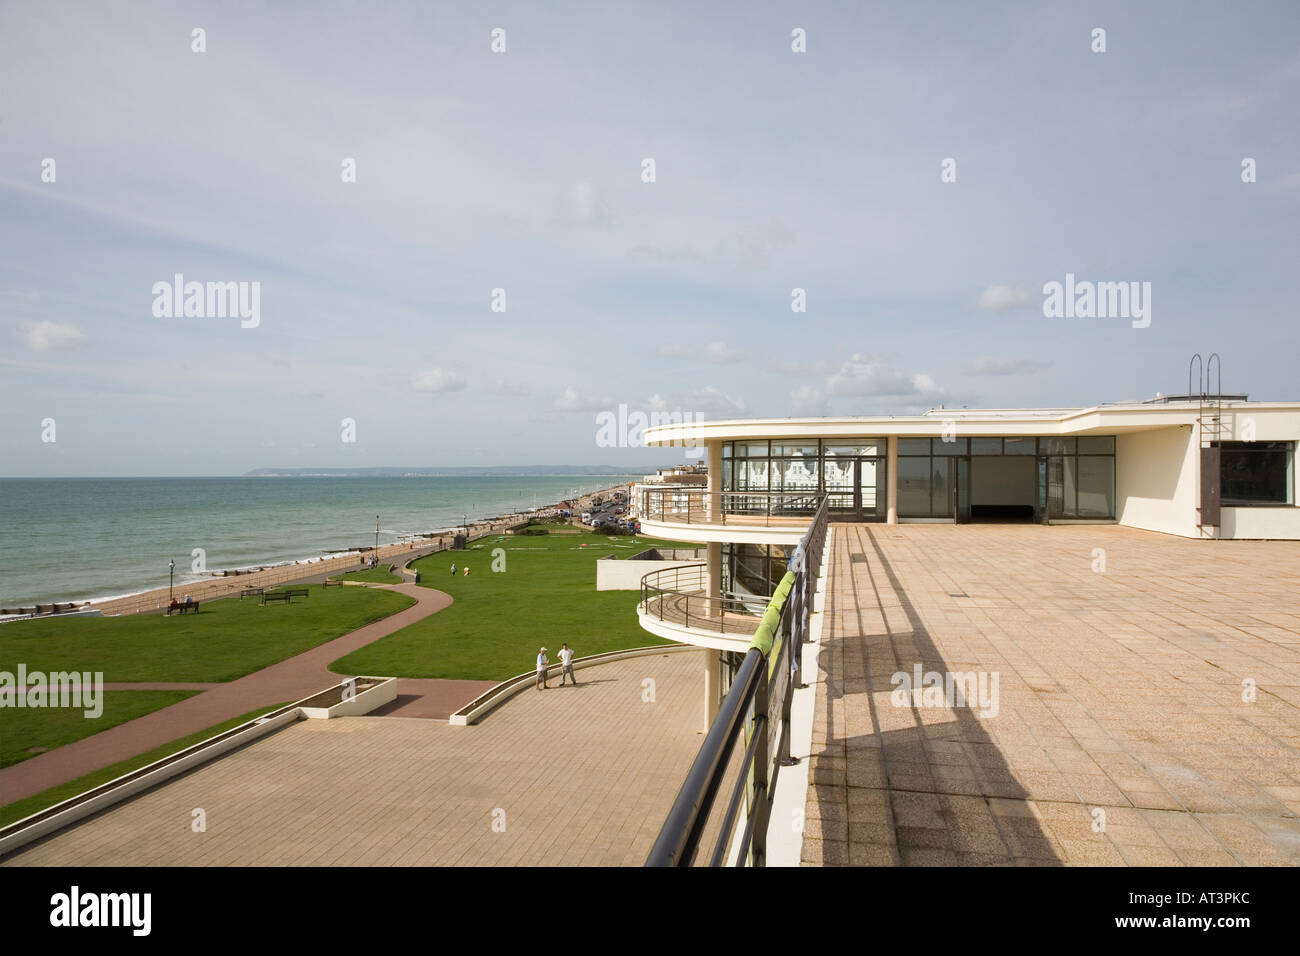 Exterior view from roof, Bexhill Pavilion, UK - Stock Image